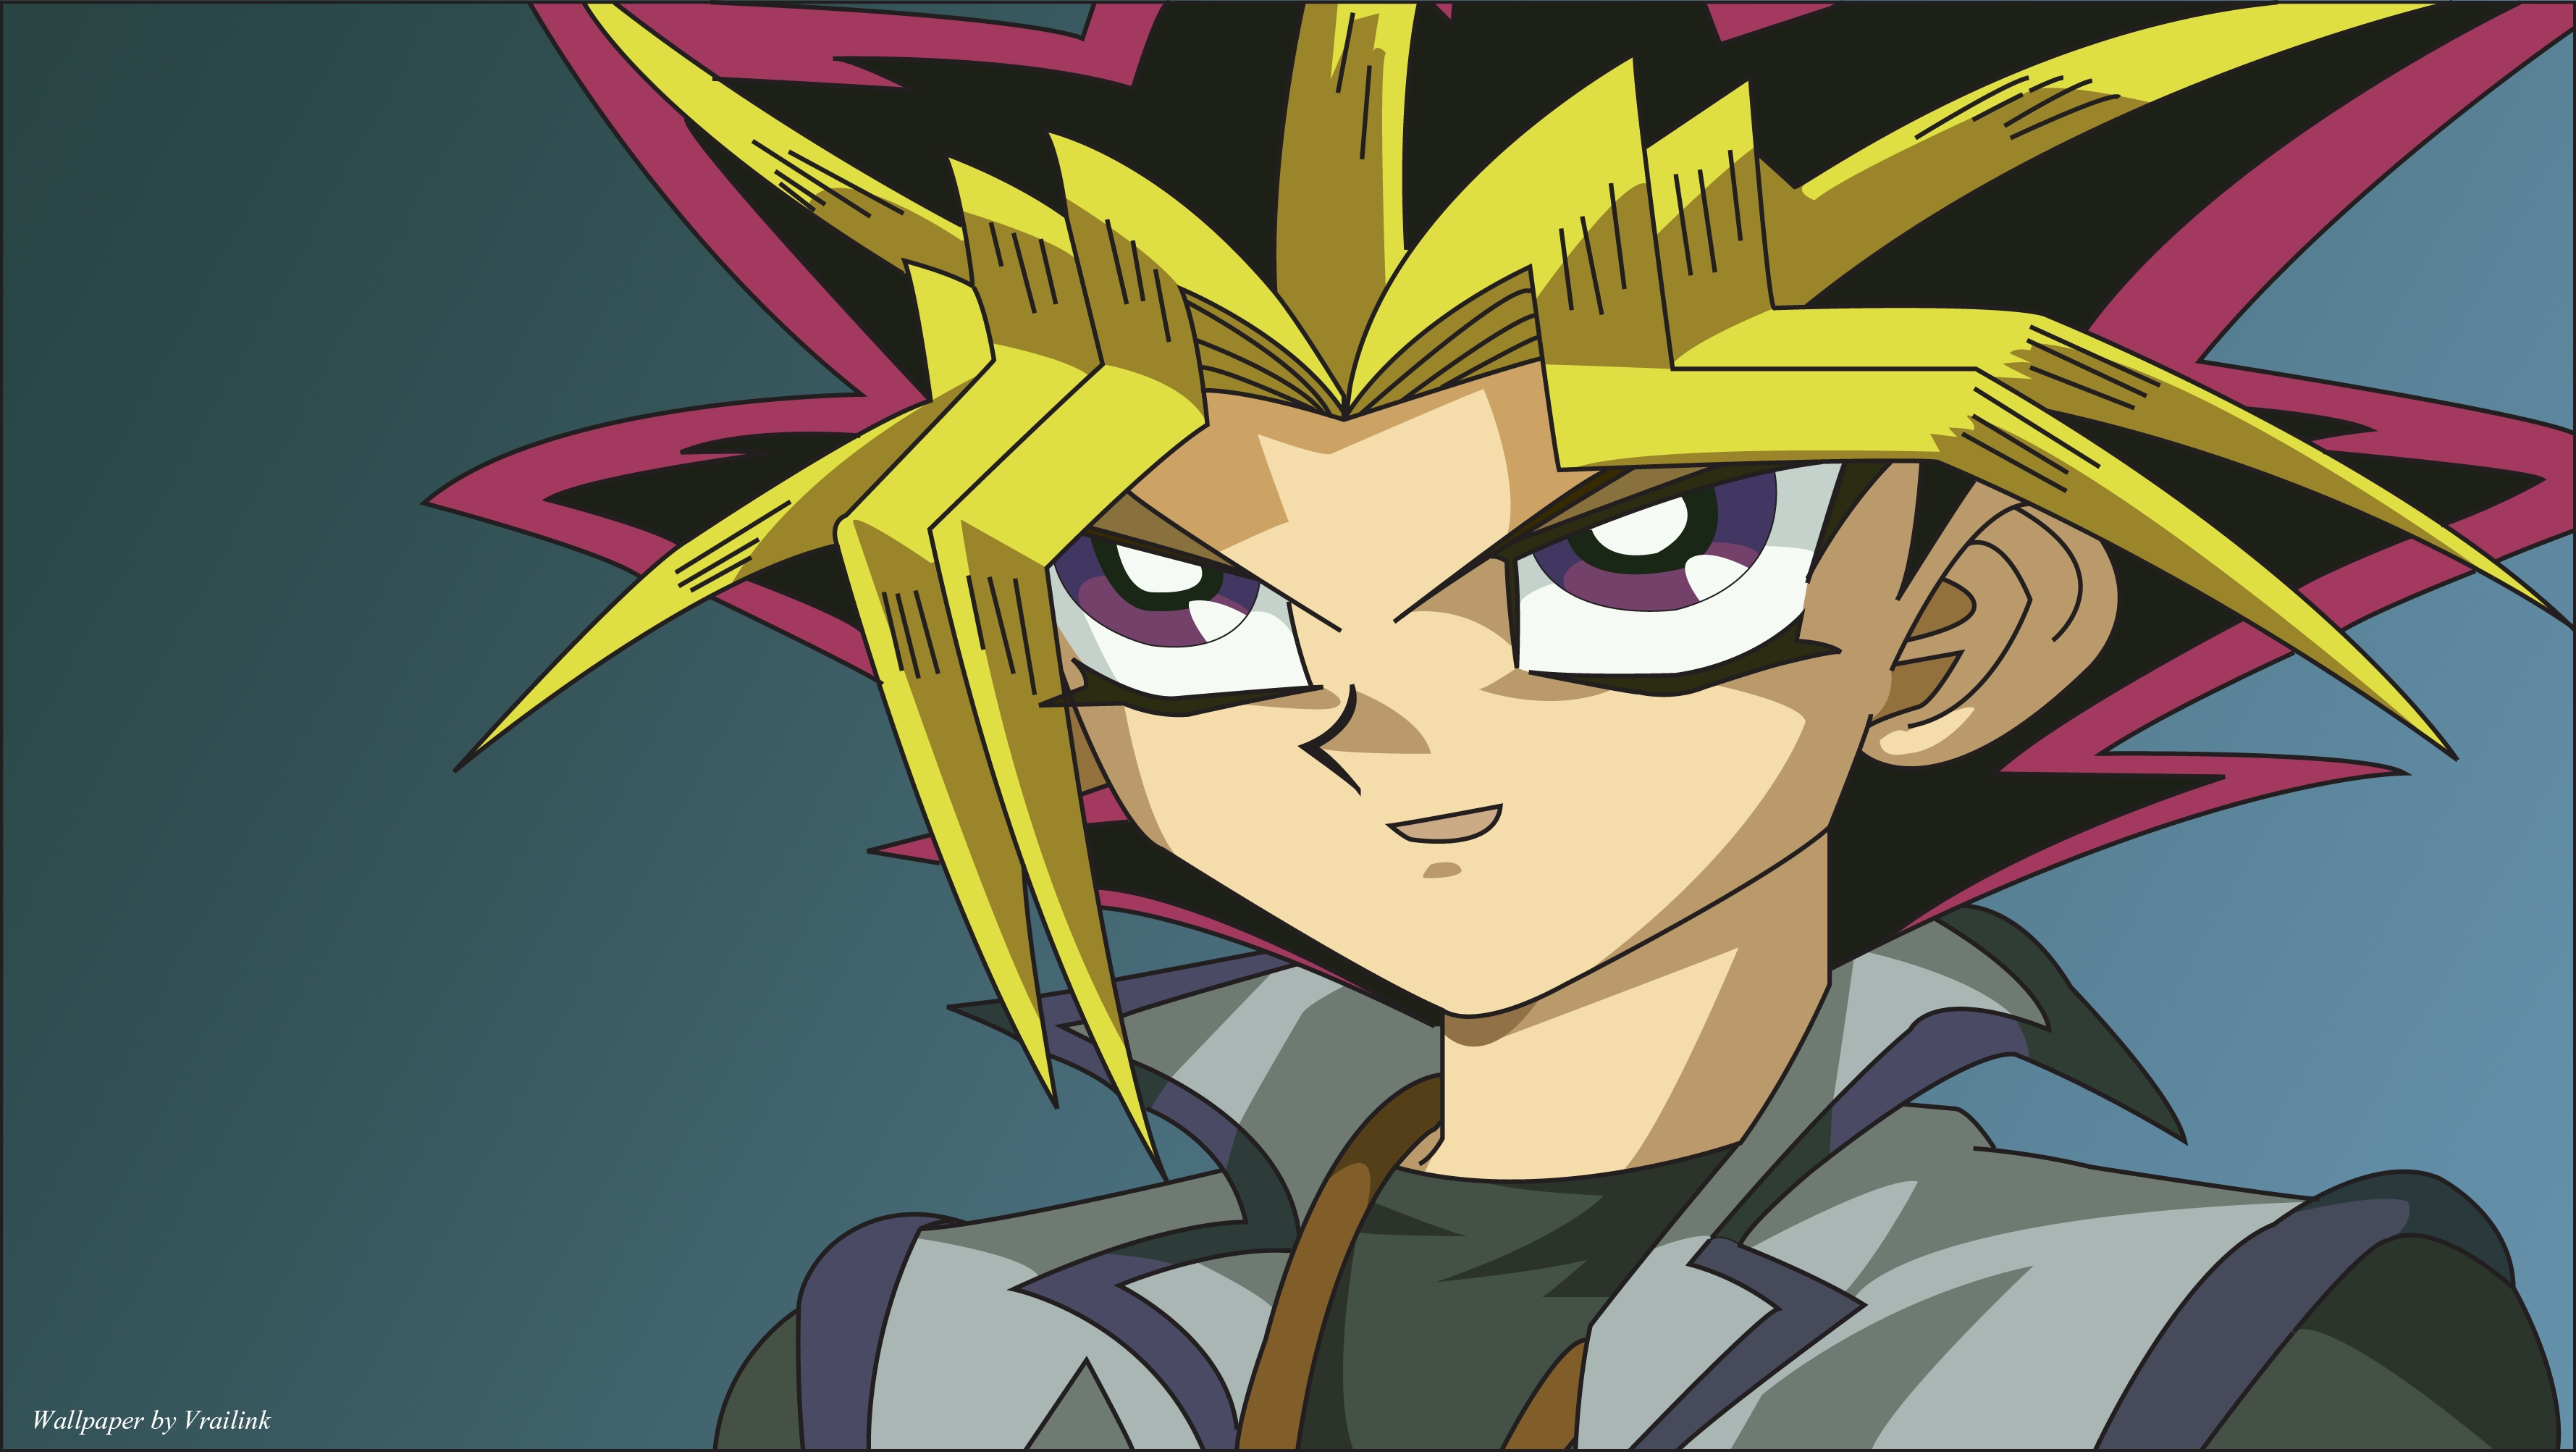 Yu Gi Oh wallpaper background 3558x2005